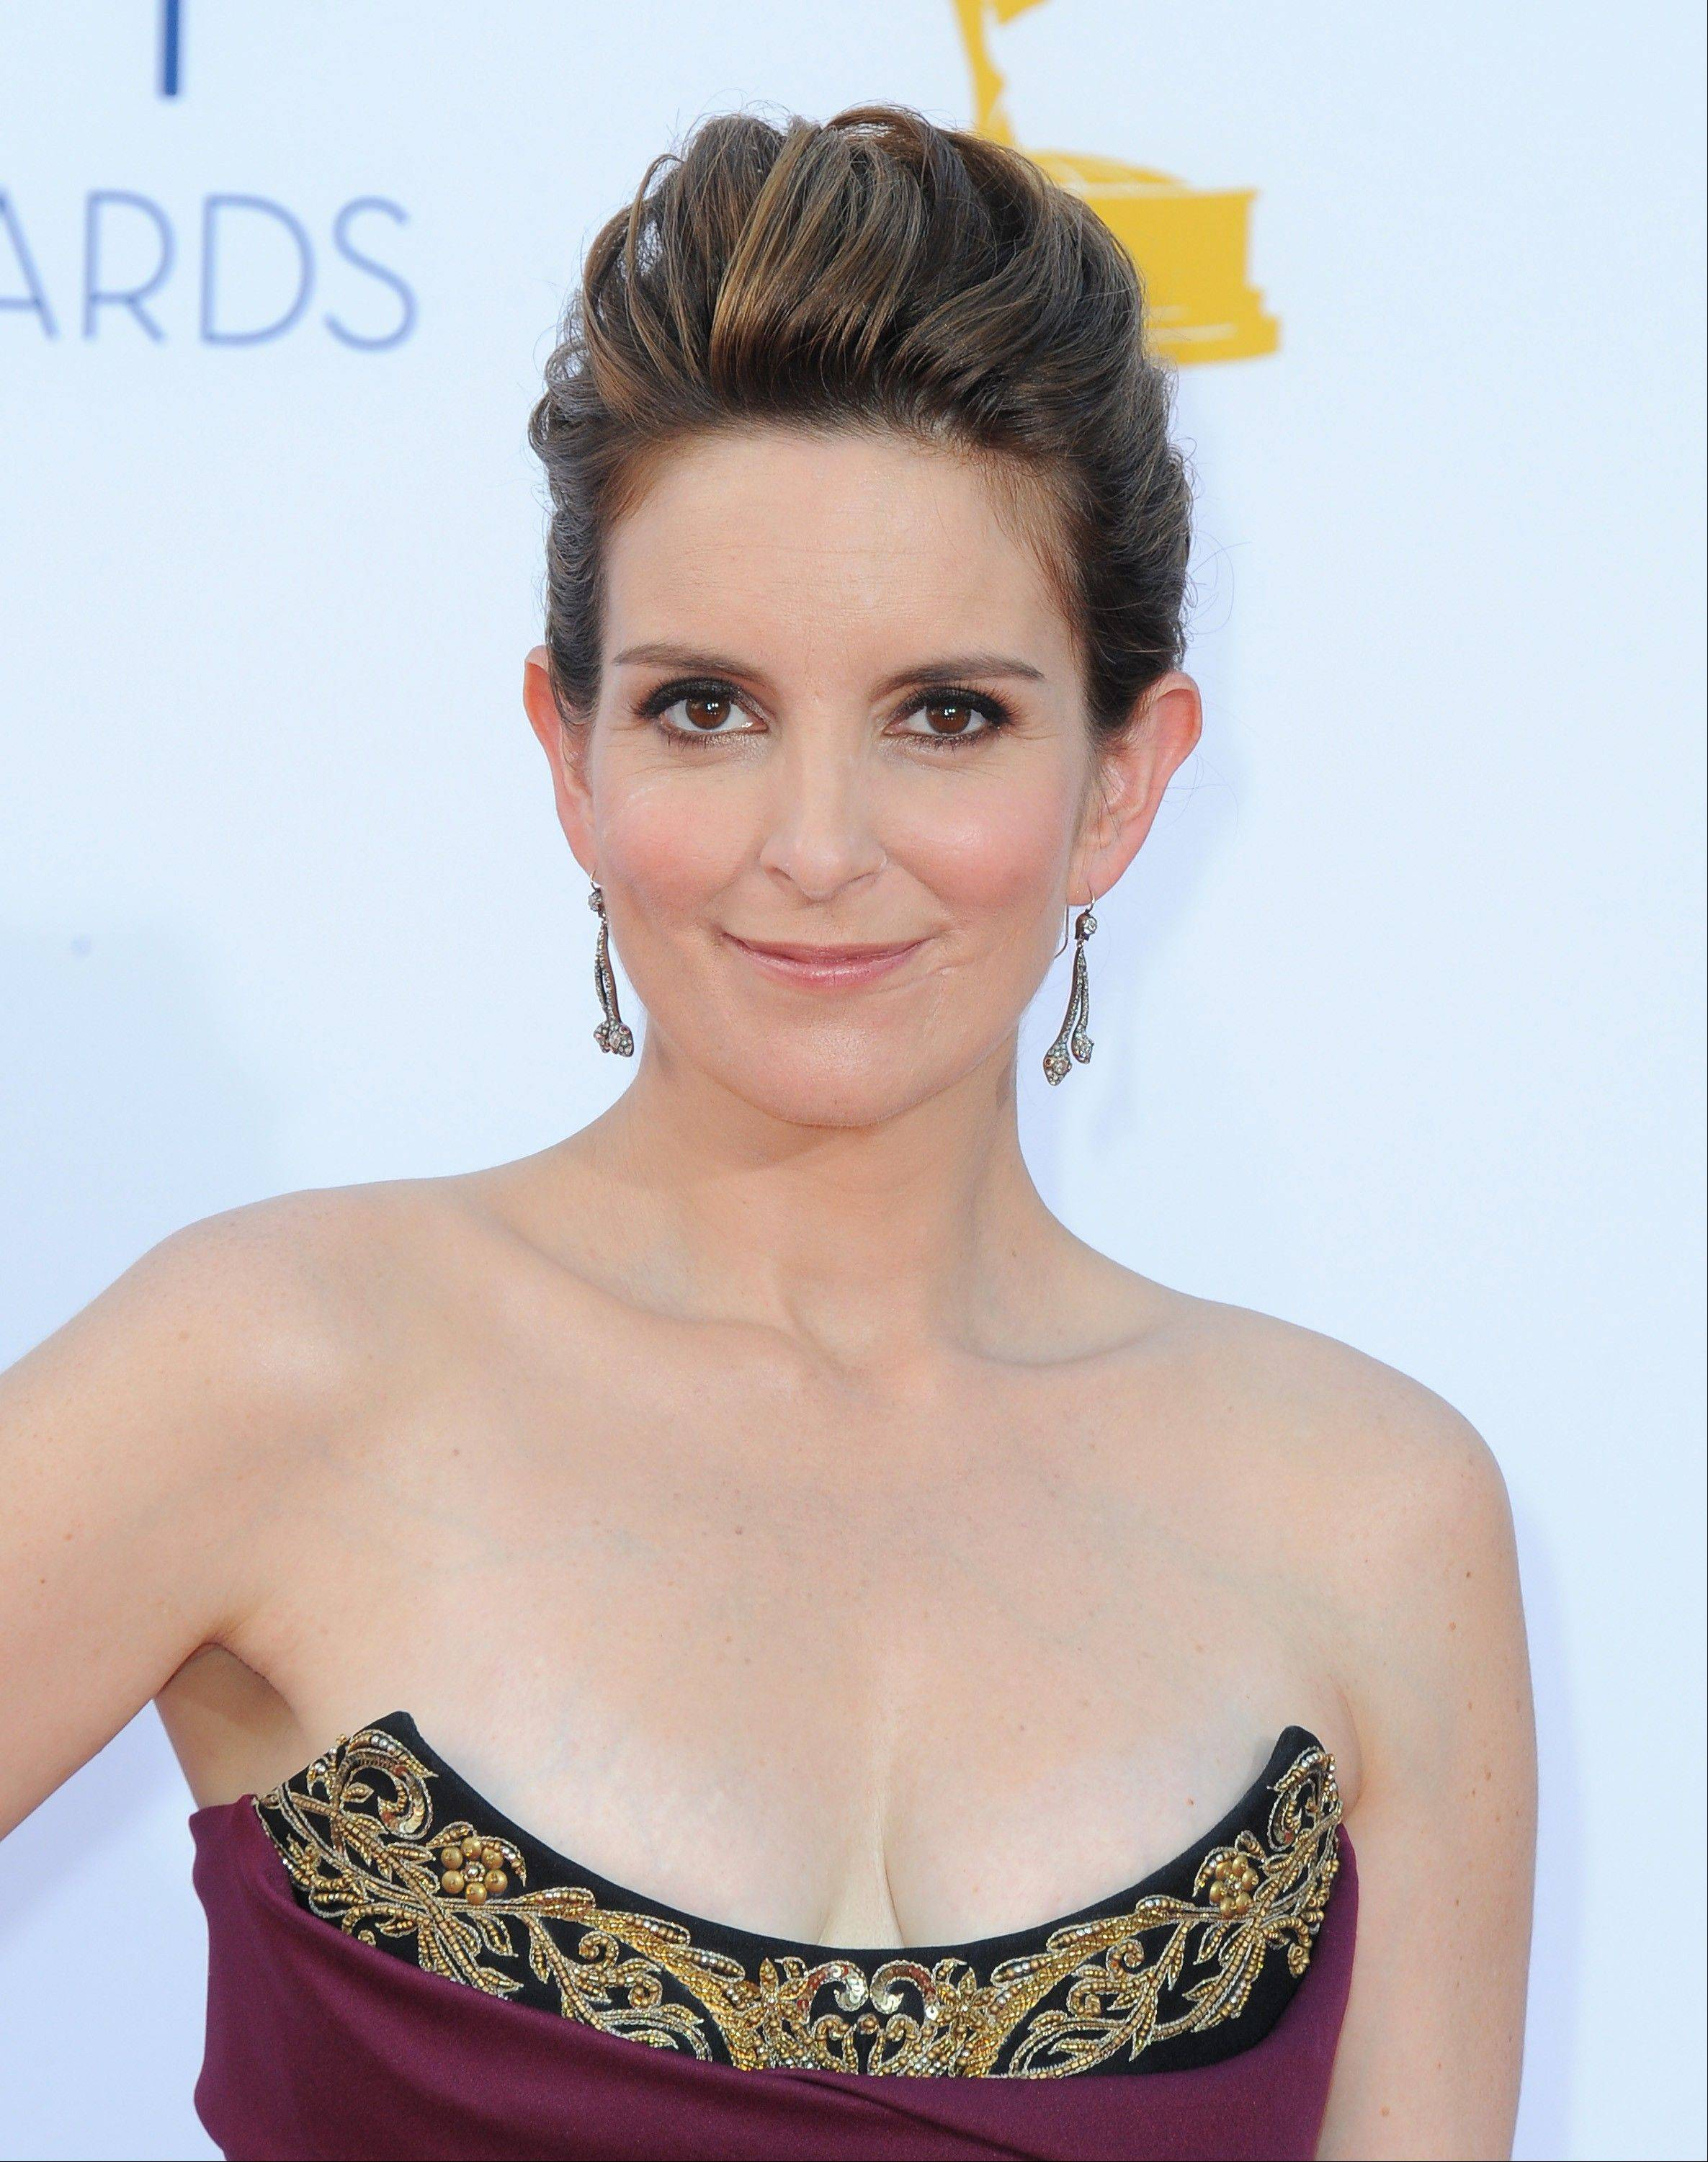 Tina Fey and Amy Poehler have signed on to host the 70th annual Golden Globes ceremony in January.